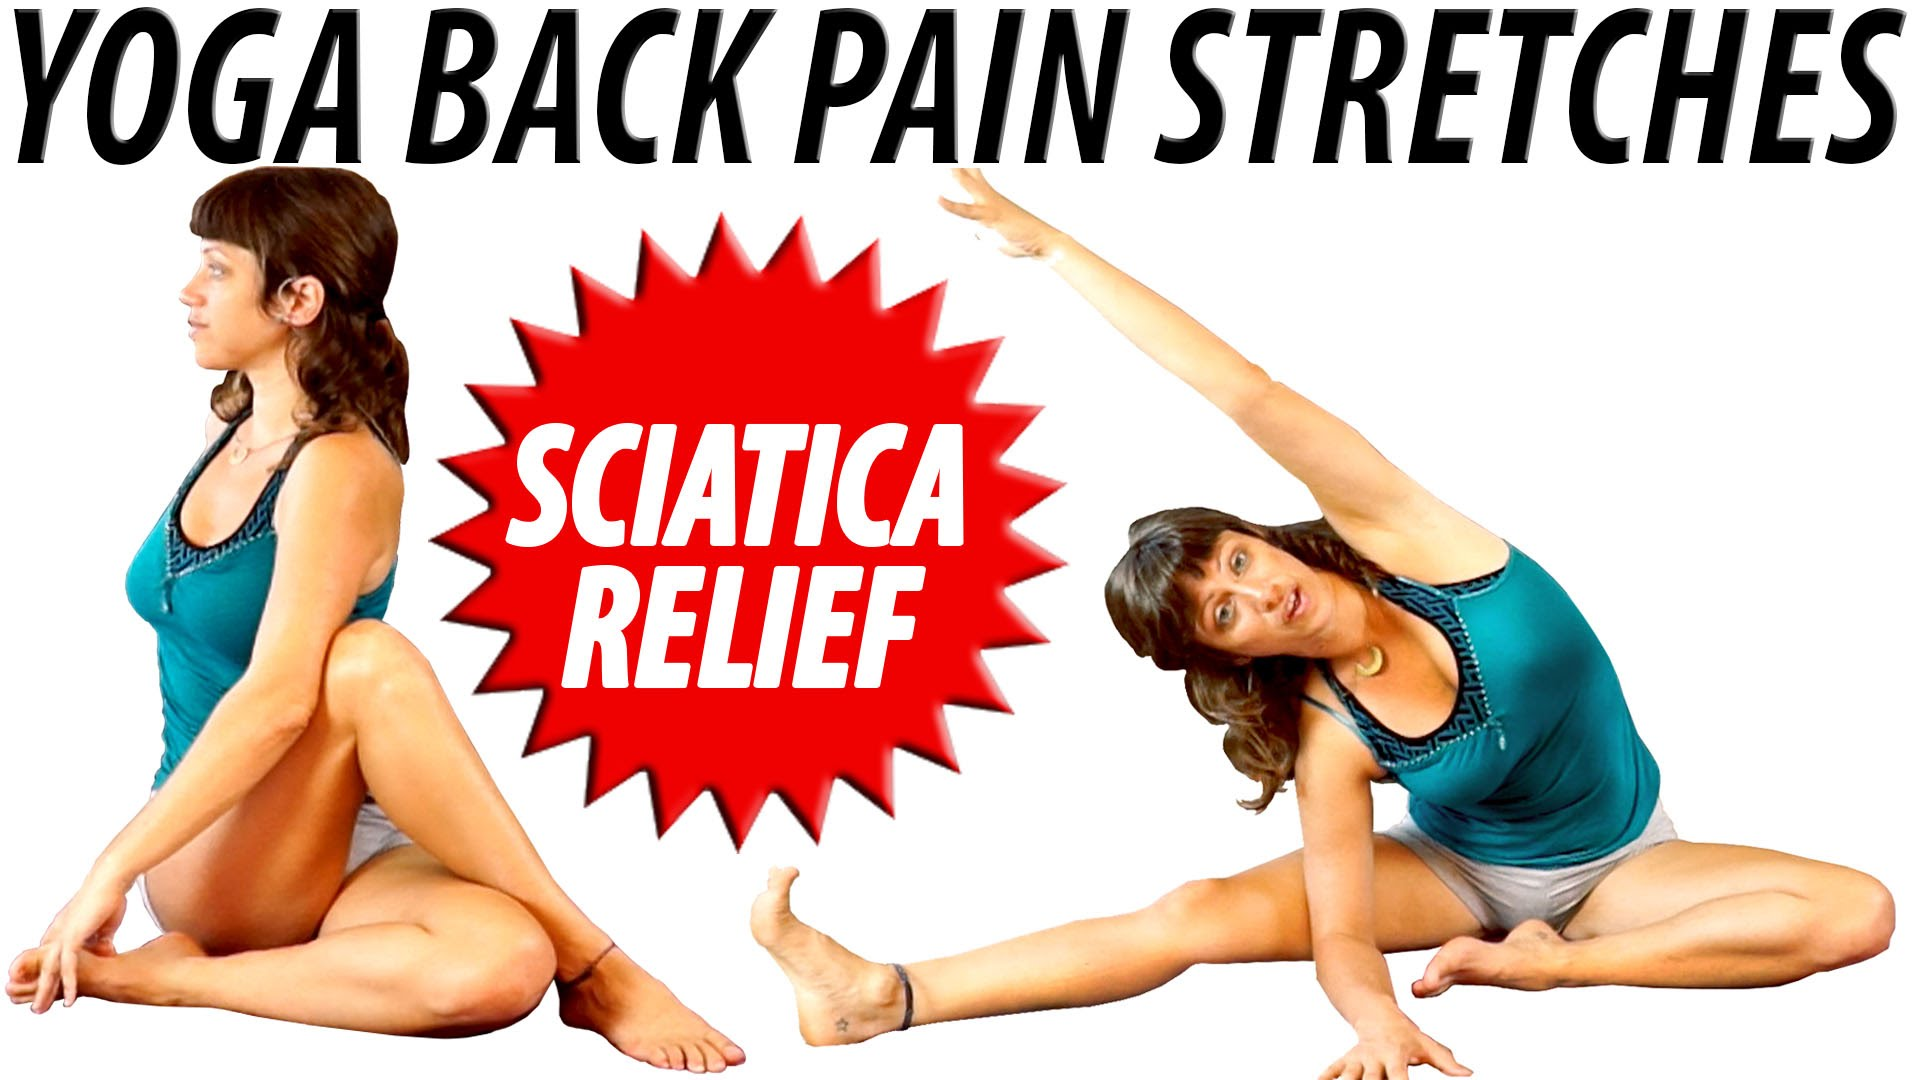 How is yoga helpful for back pain? 3